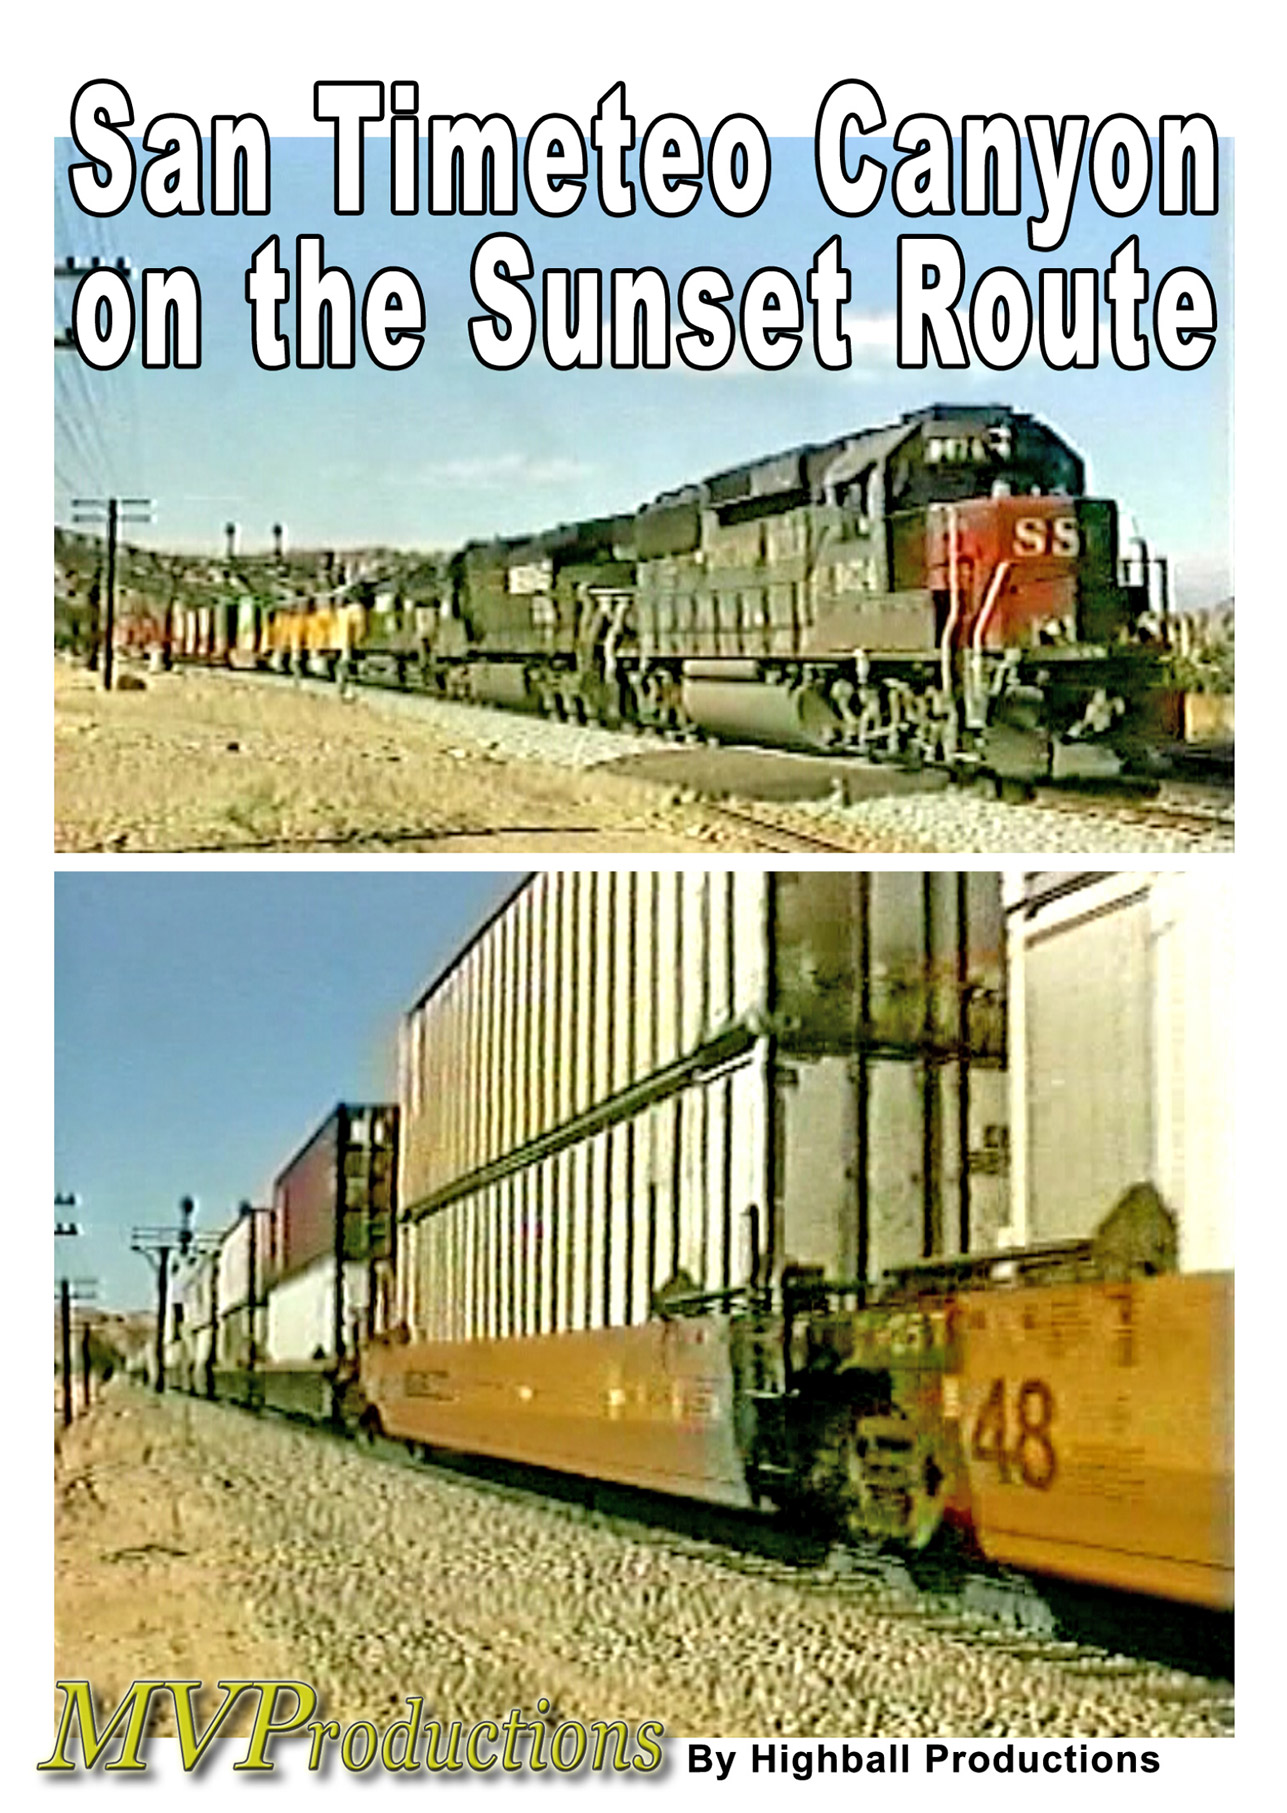 San Timoteo Canyon on the Sunset Route Midwest Video Productions MVSTC 601577880202